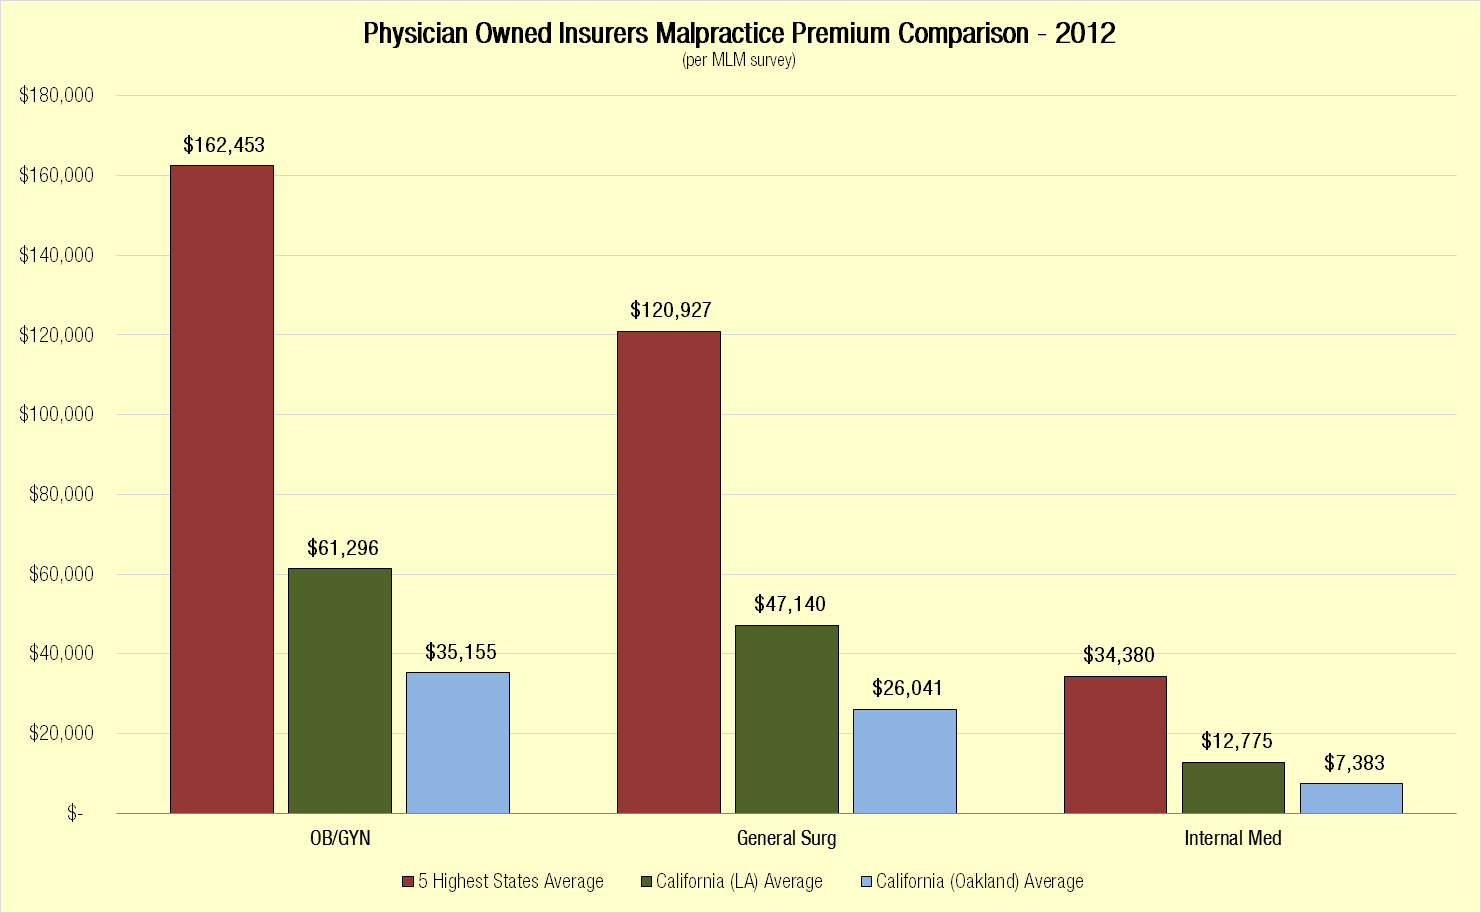 Physicians Owned Insurers Malpractice Premium Comparison Chart, 2012